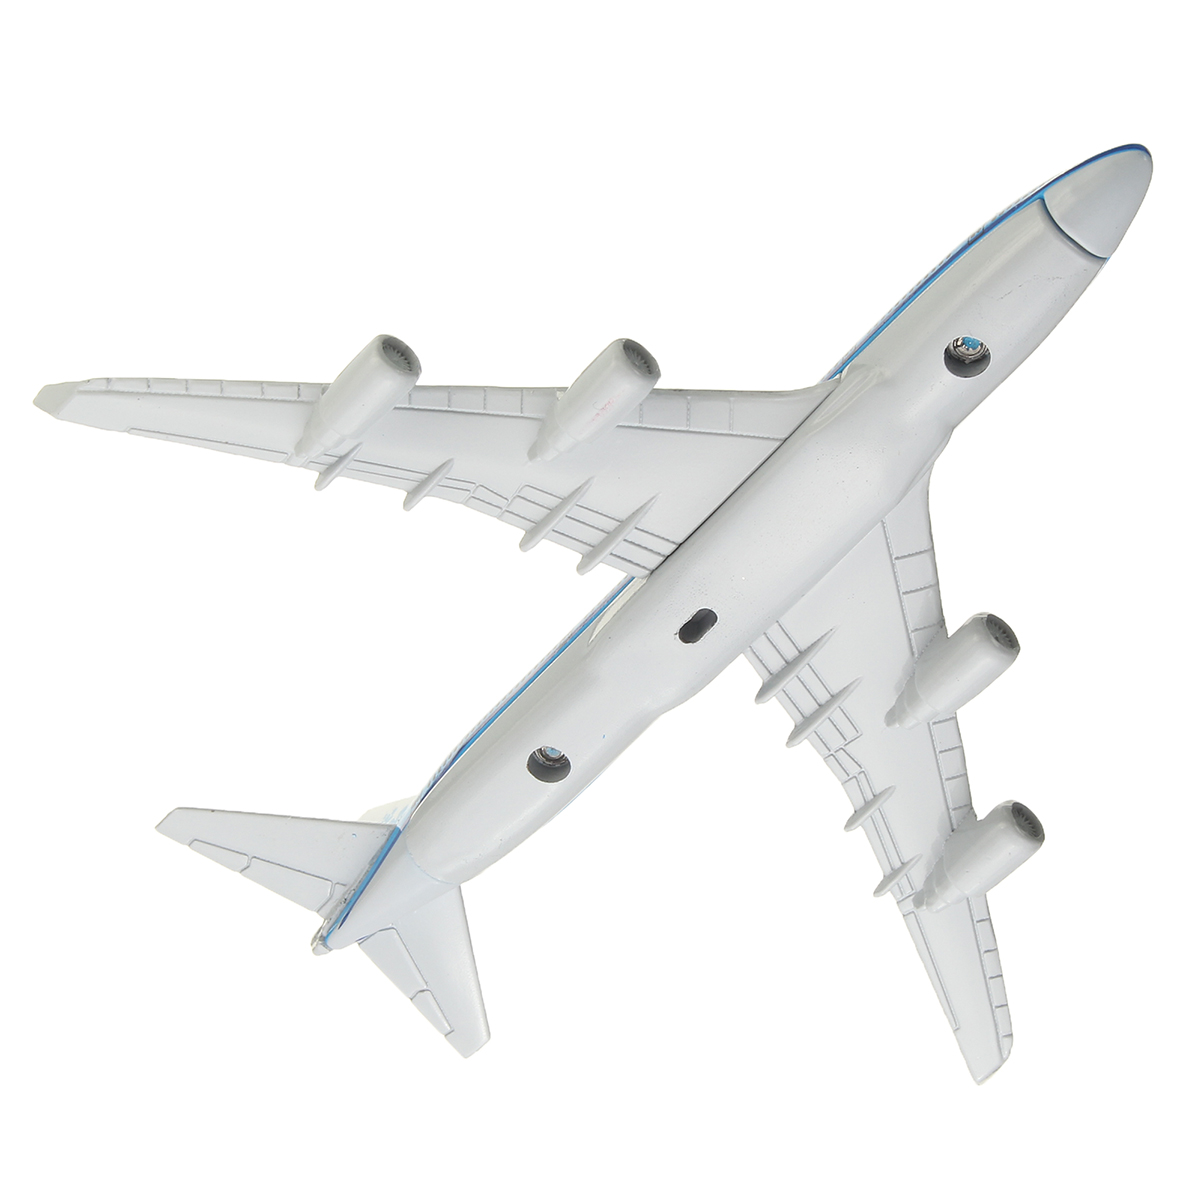 NEW 16cm Airplane Metal Plane Model Aircraft B747 KLM Aeroplane Scale Airplane Desk Toy